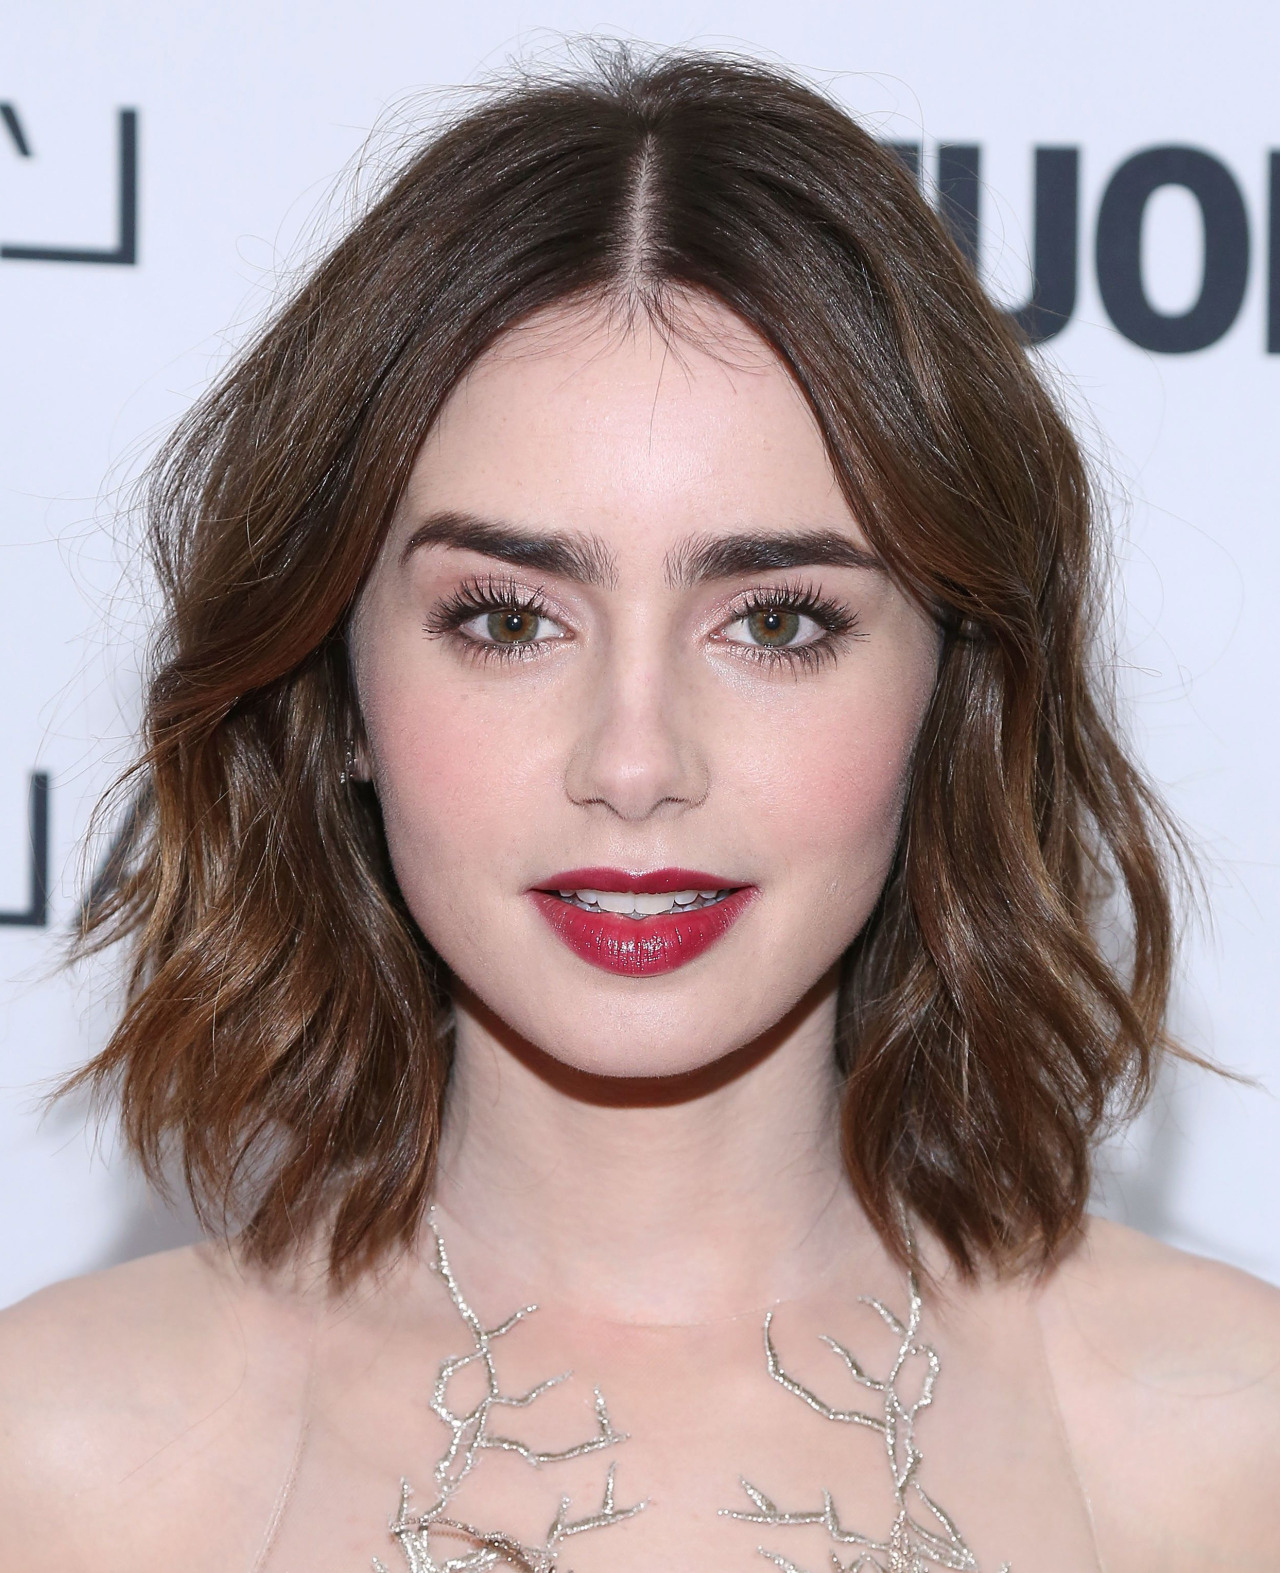 15 Of The Best Hairstyles For Medium Length Wavy Hair – The Skincare Within Most Recently Released Medium Hairstyles Loose Curls (View 5 of 20)